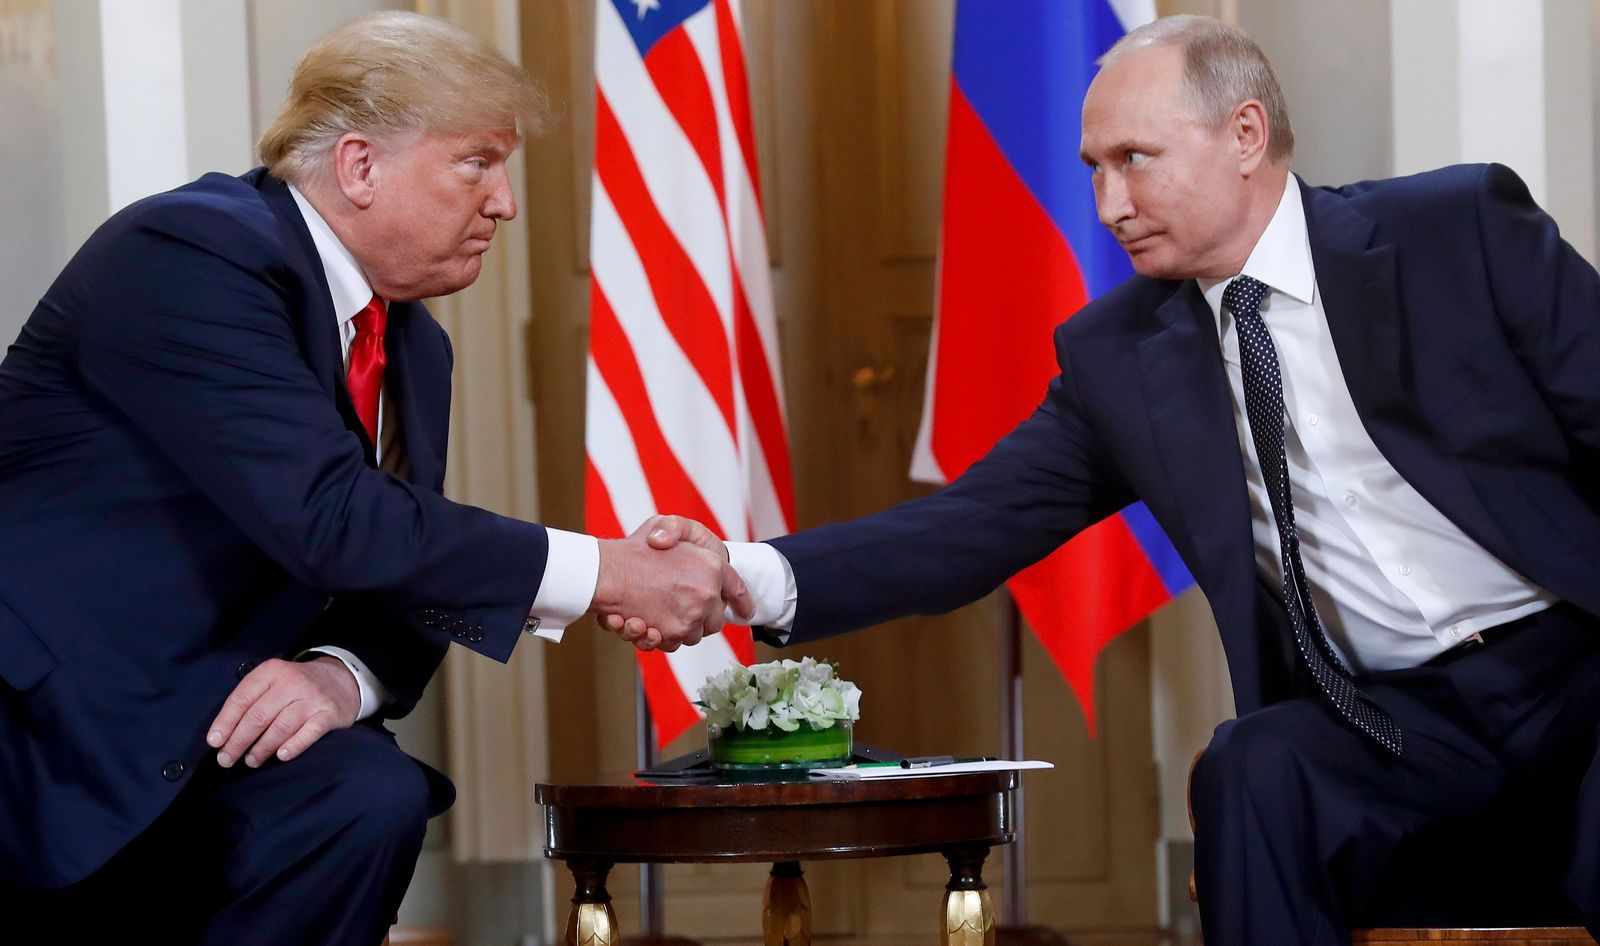 U.S. President Donald Trump, left, and Russian President Vladimir Putin shake hands at the beginning of a meeting at the Presidential Palace in Helsinki, Finland, on July 16, 2018. (AP Photo/Pablo Martinez Monsivais)